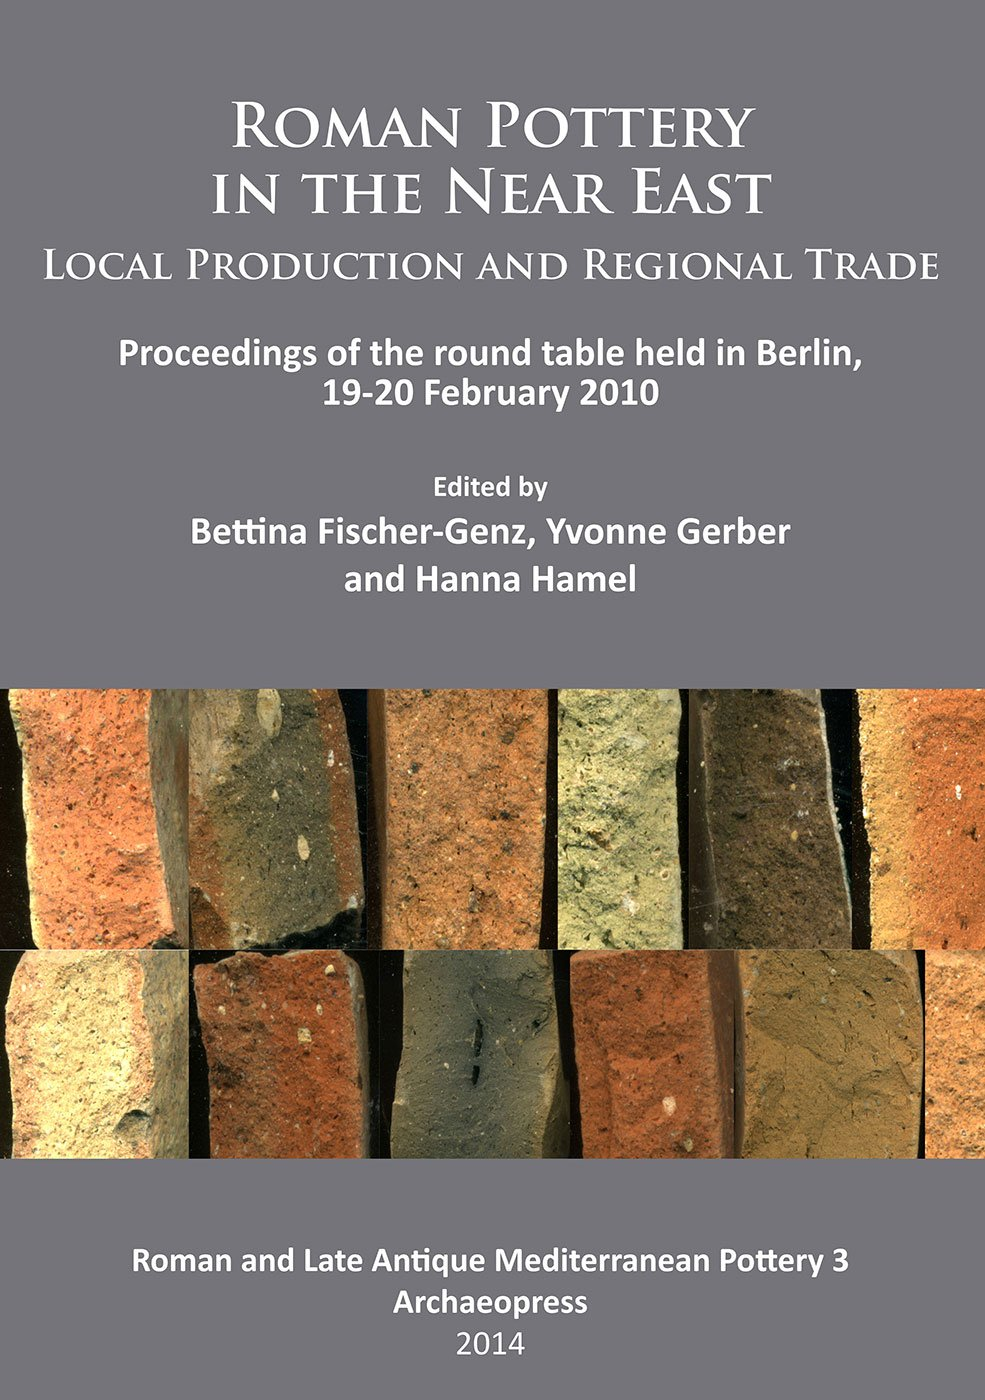 Roman Pottery in the Near East: Local Production and Regional Trade: Proceedings of the round table held in Berlin, 19-20 February 2010 (Roman and Late Antique Mediterranean Poetry)